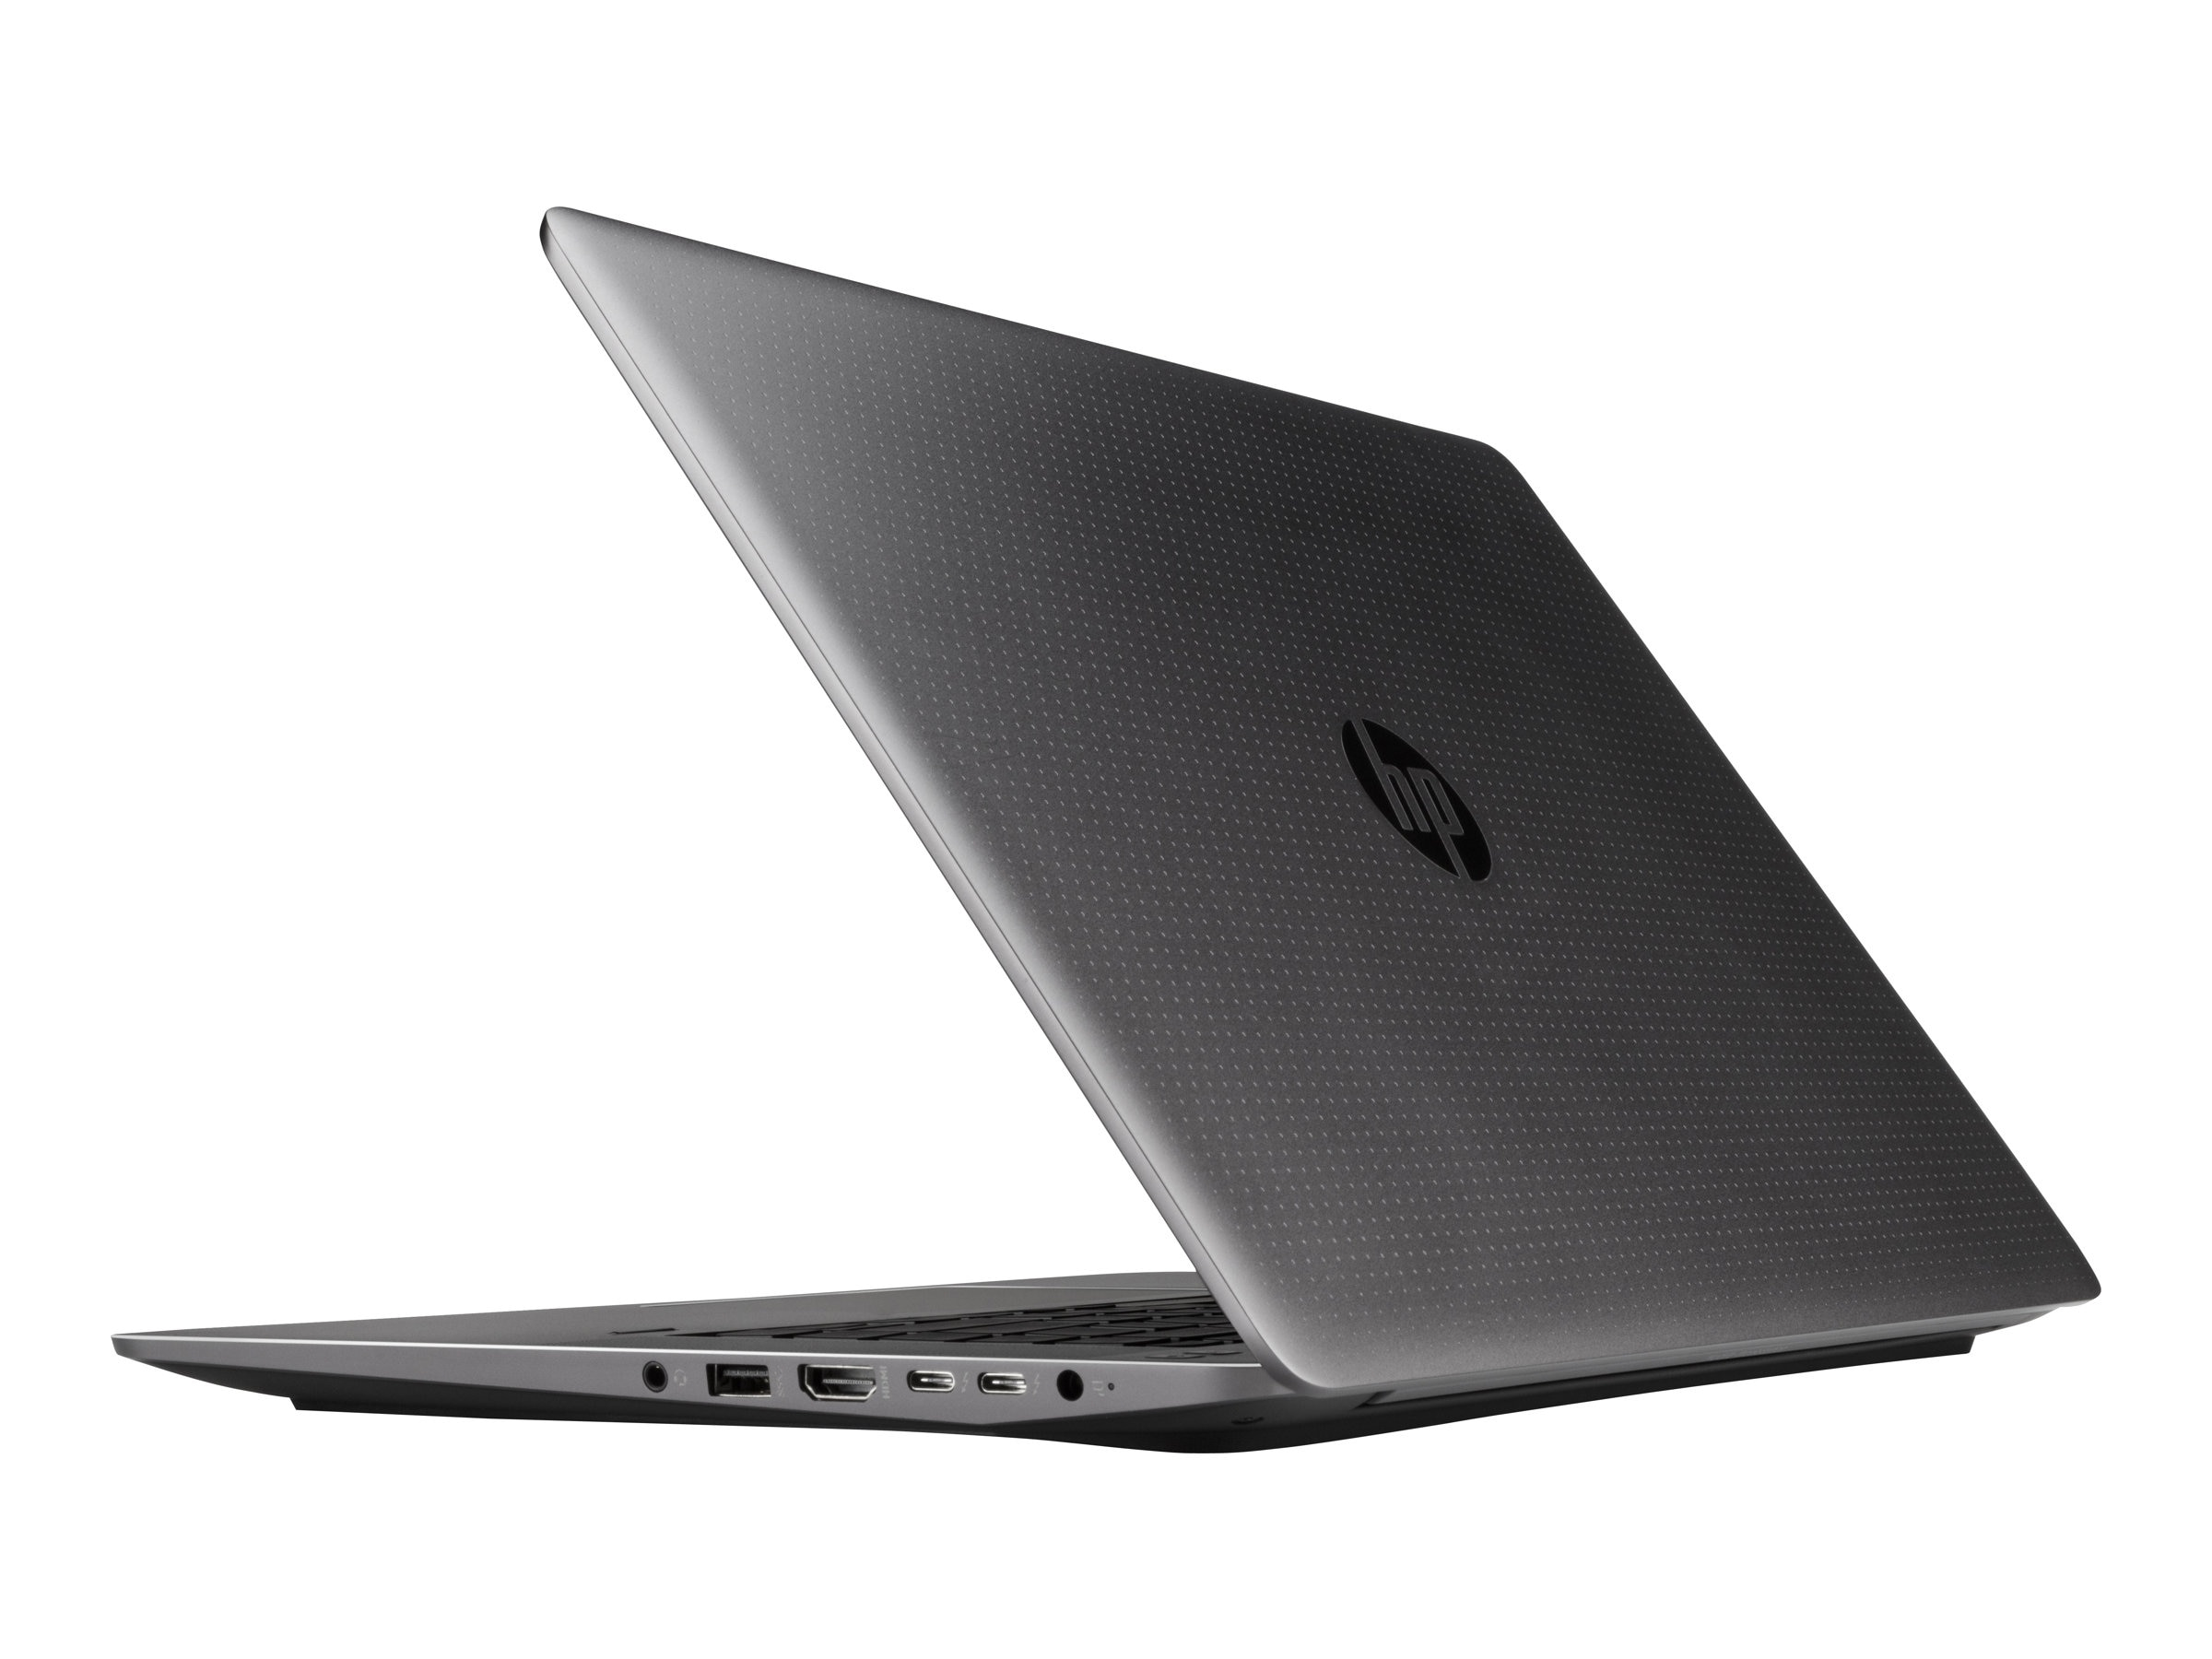 HP Smart Buy ZBook Studio G3 2.6GHz Core i7 15.6in display, T6E17UT#ABA